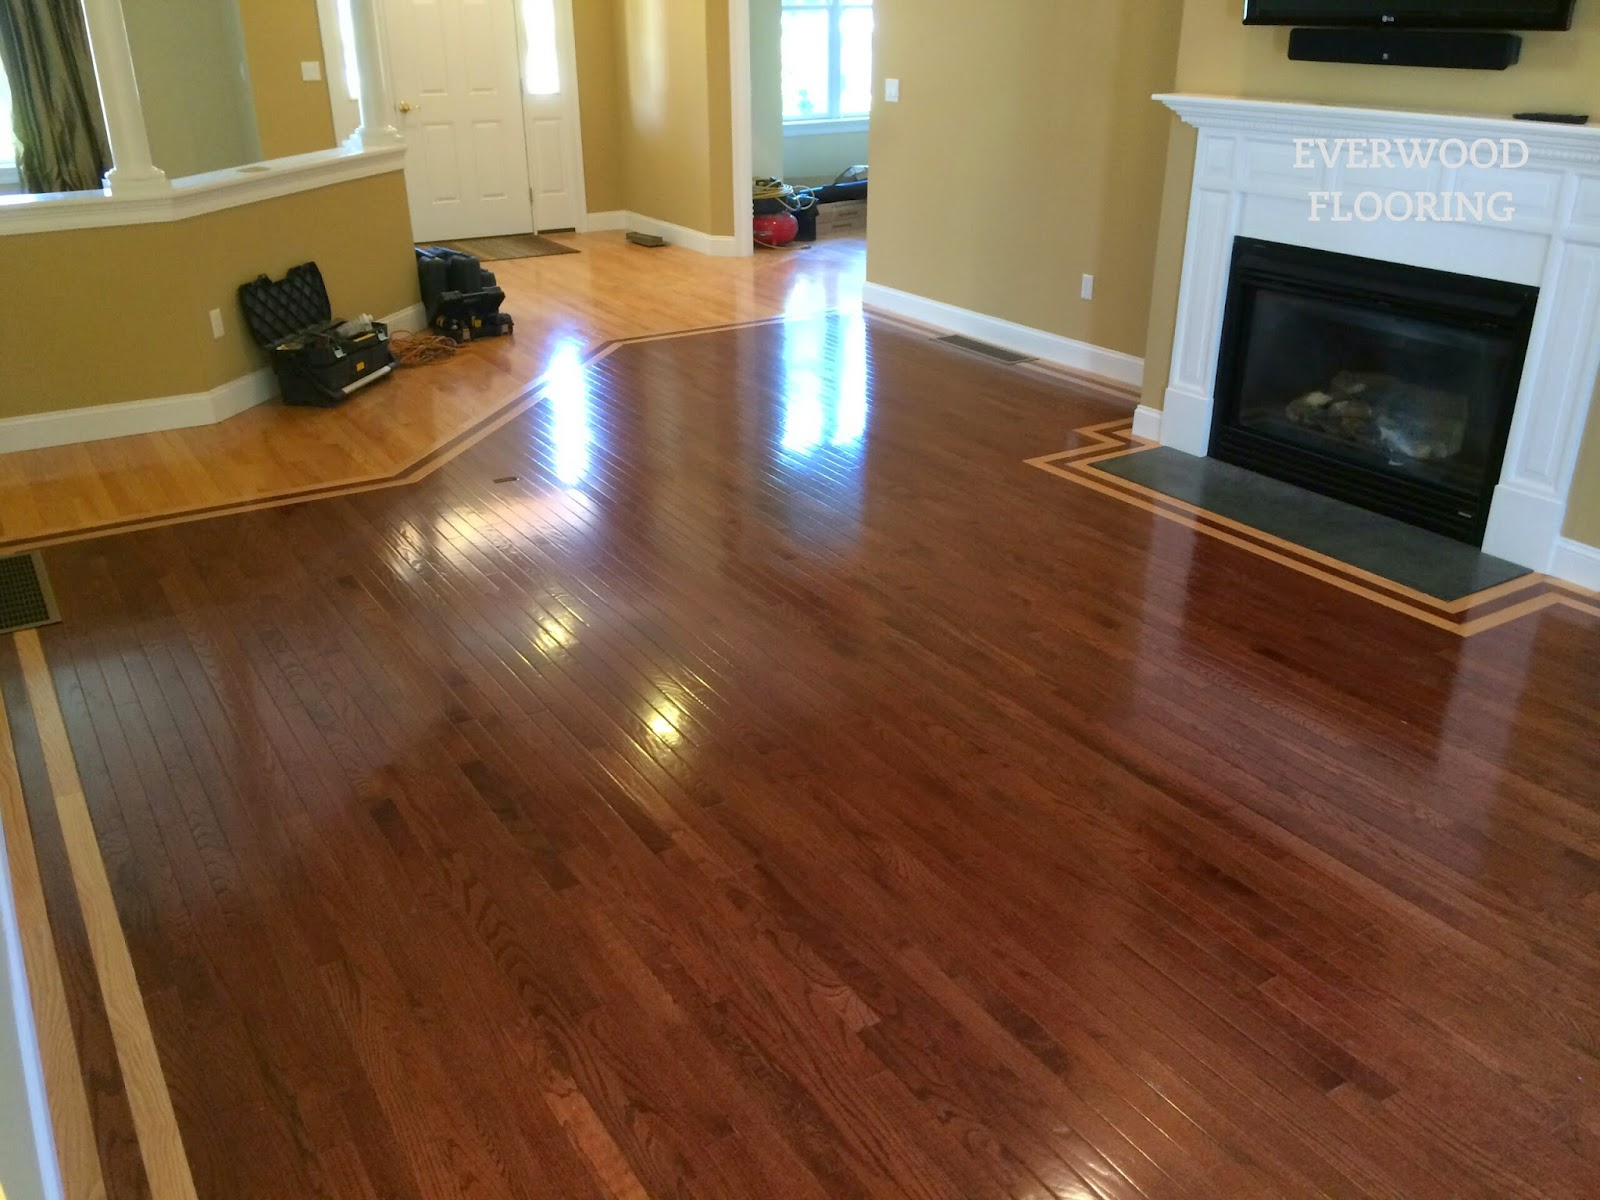 engineered bruce floors cleaner for specials ideas hardwood flooring to buy where lowes prefin hickory walnut floor home decorating nice installation cozy